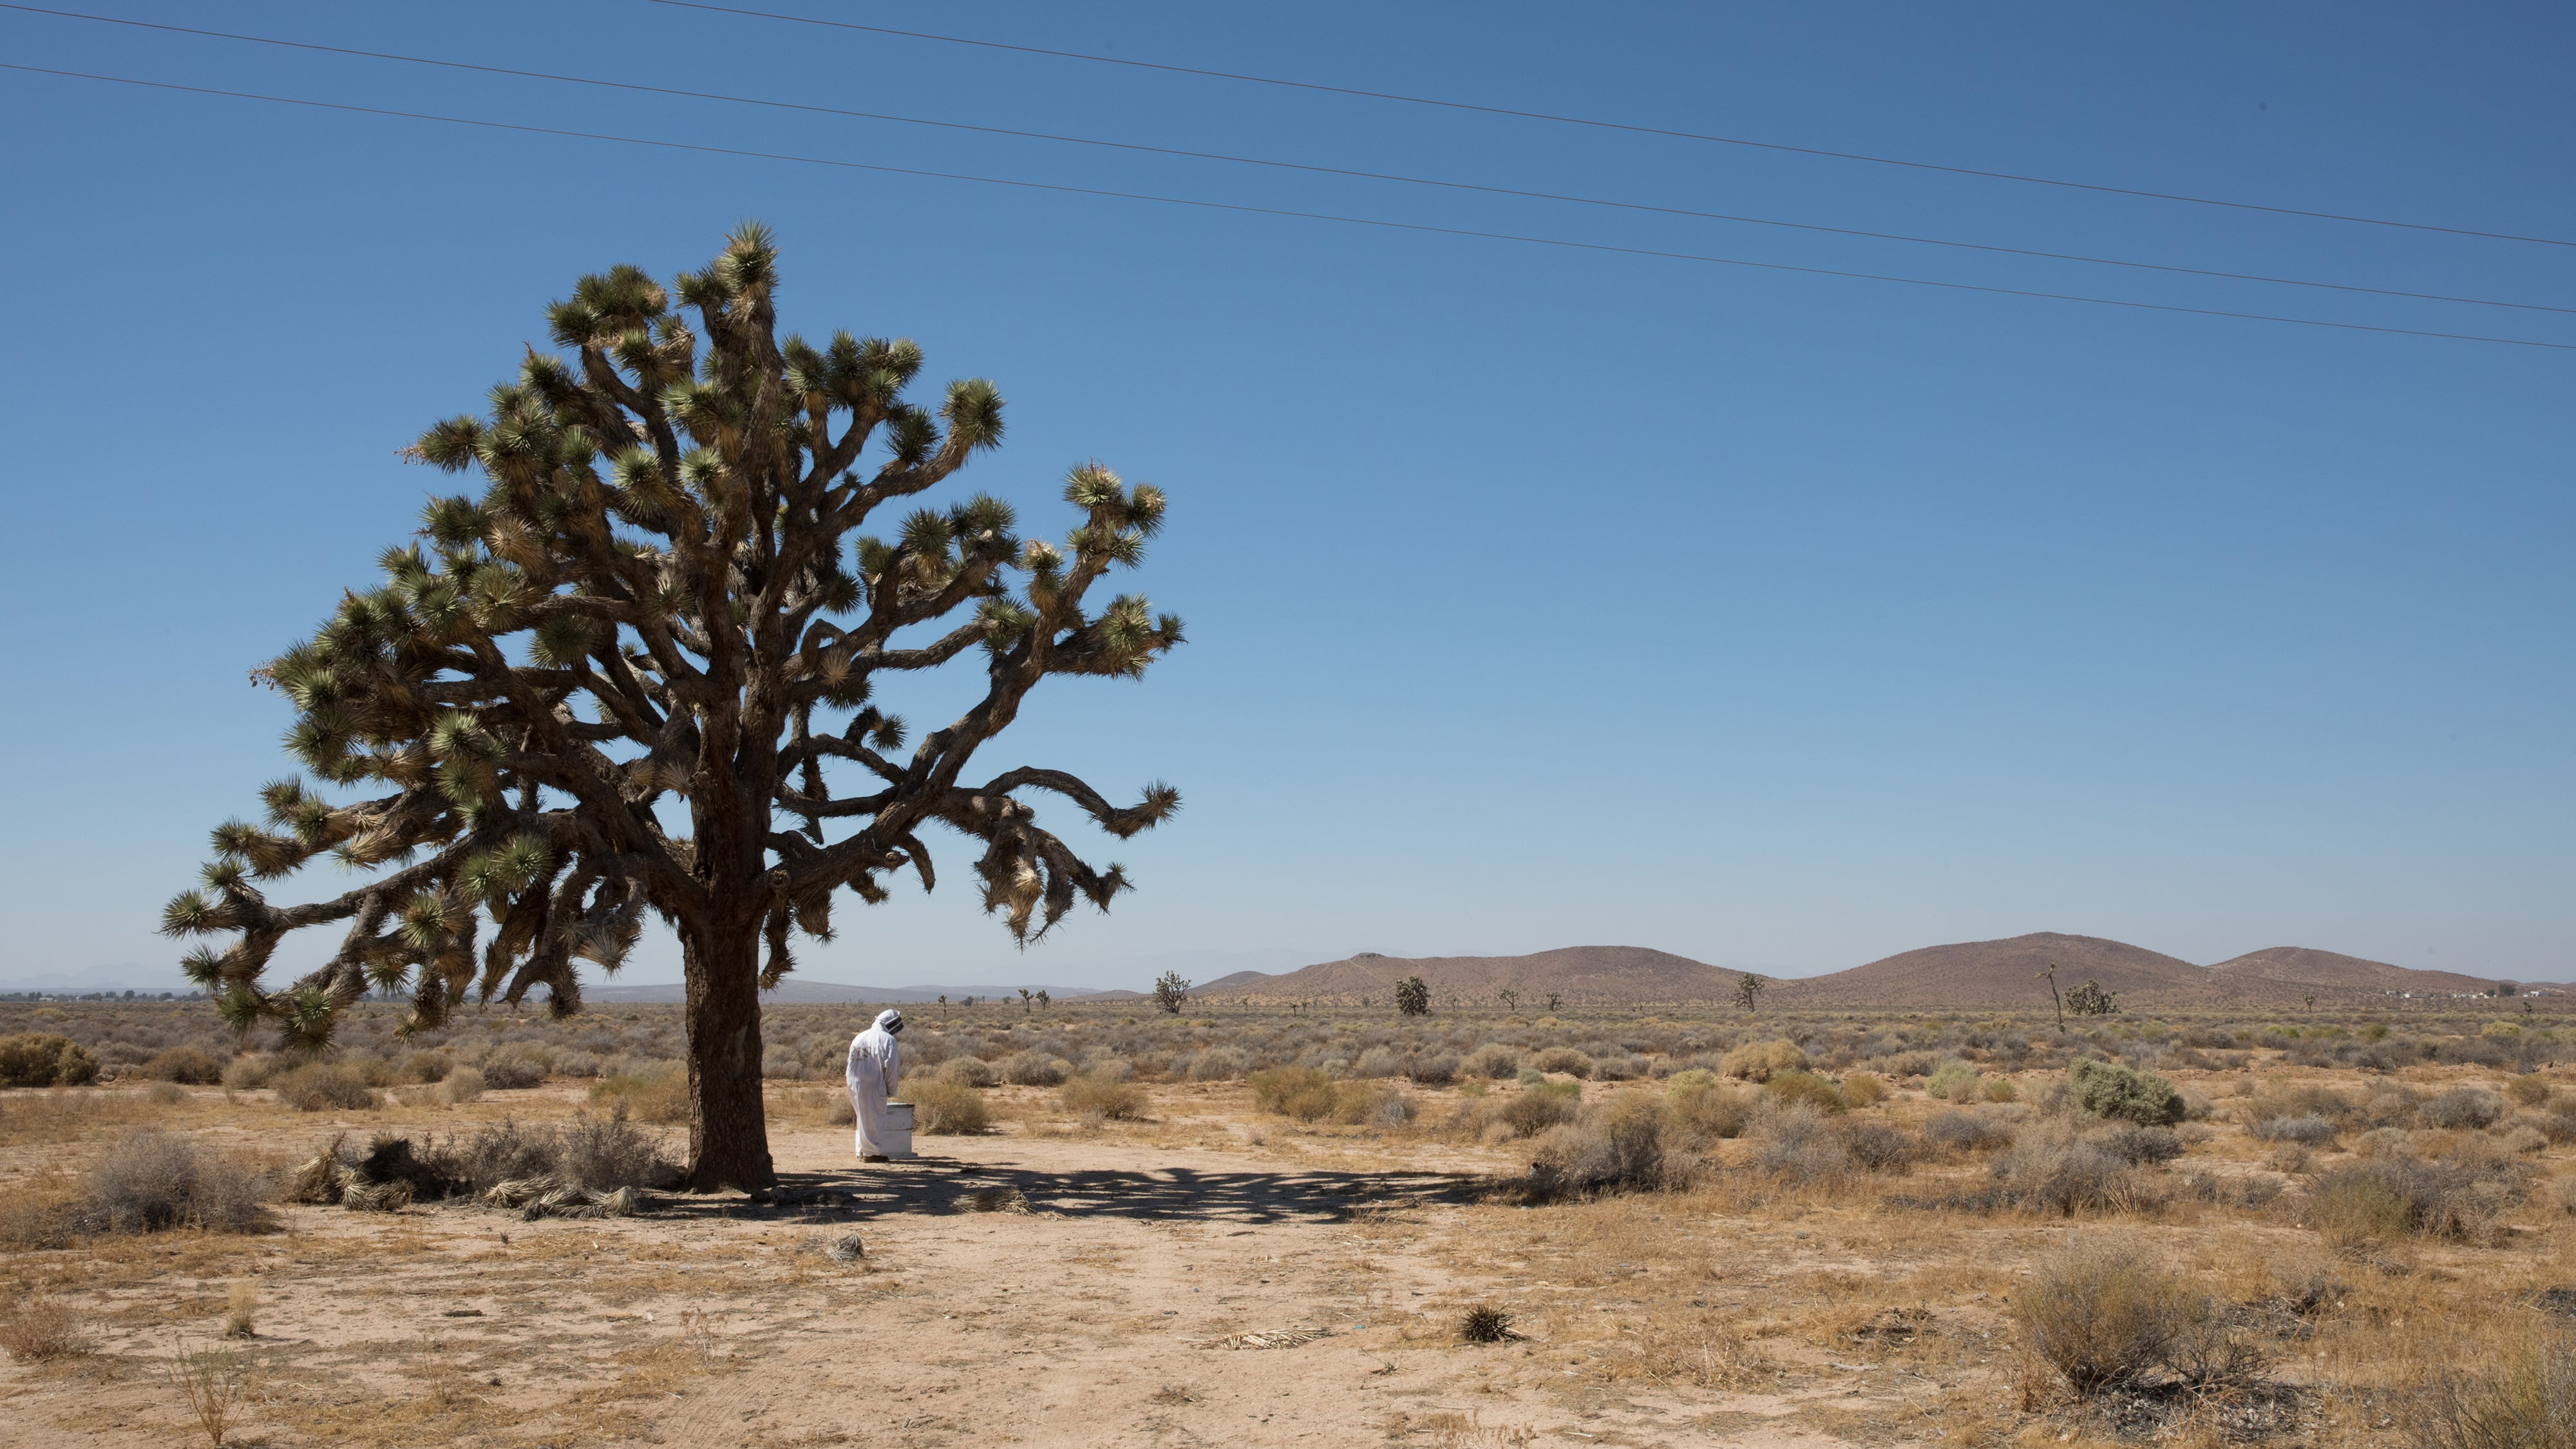 Tree in the Mojave Desert near Boron